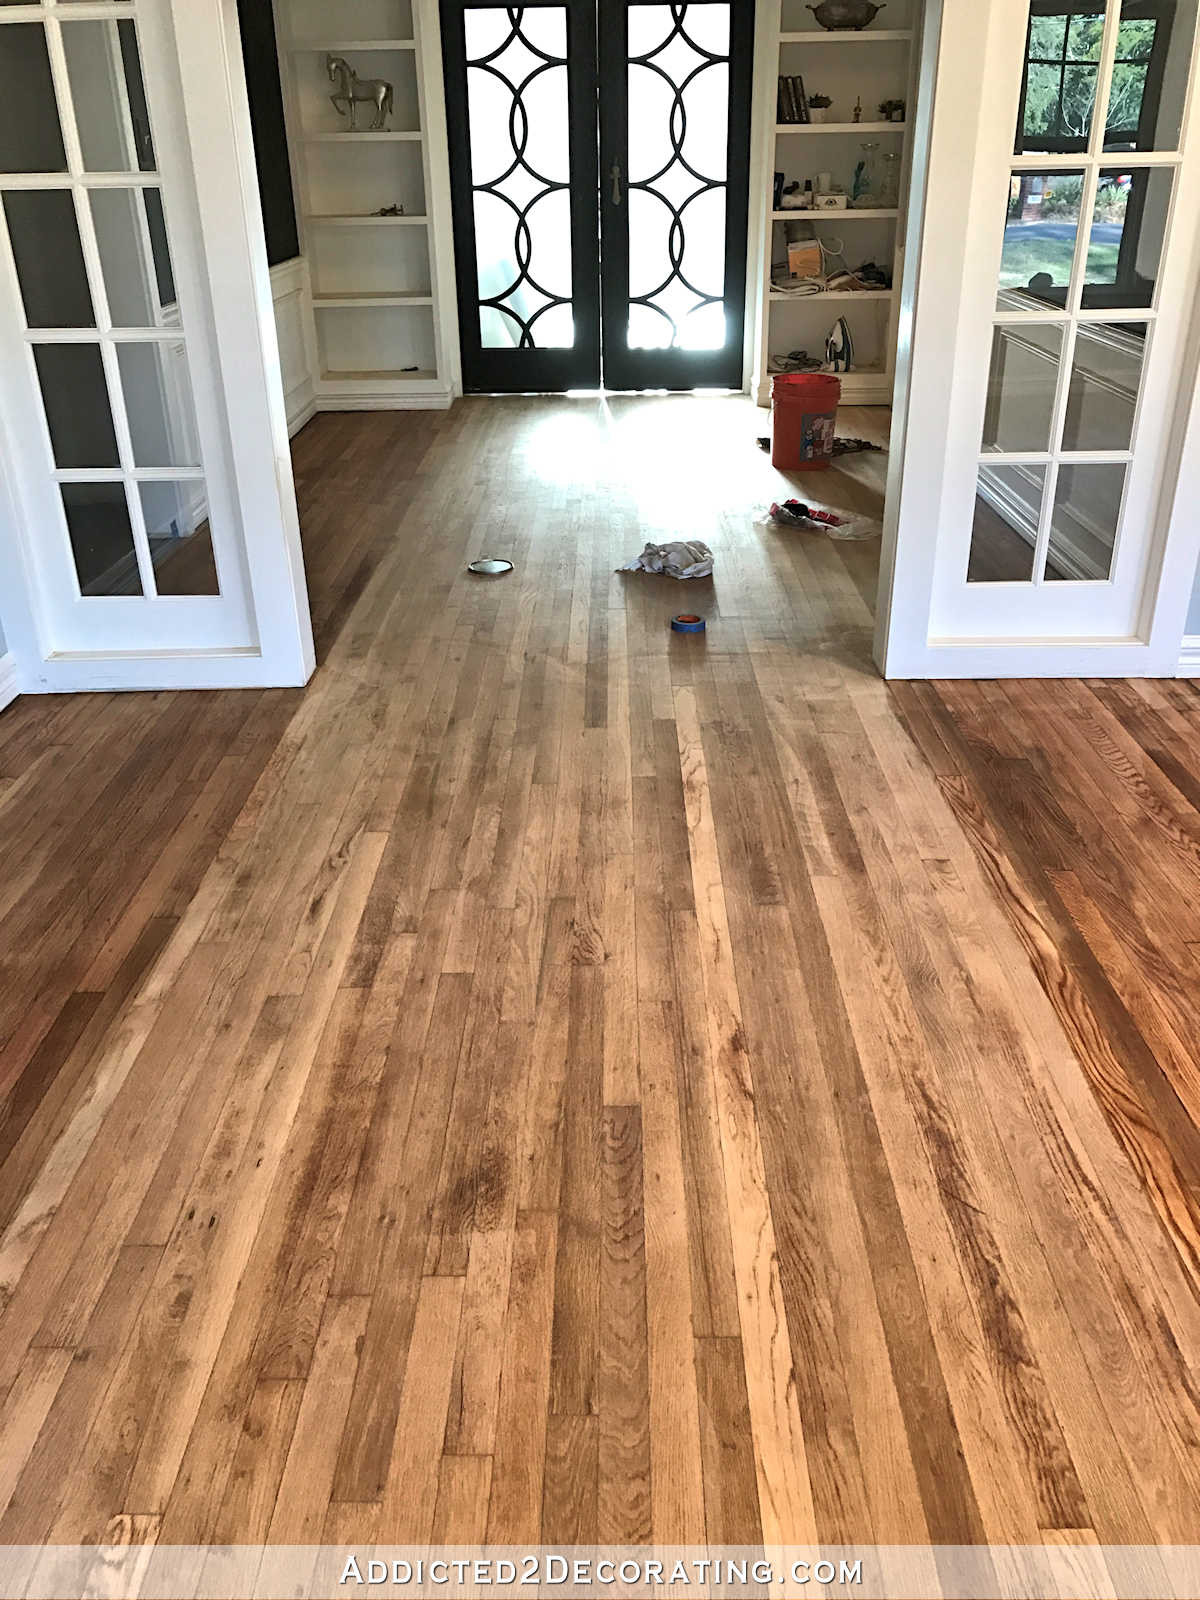 Black Walnut Hardwood Flooring Prices Of Adventures In Staining My Red Oak Hardwood Floors Products Process with Regard to Staining Red Oak Hardwood Floors 5 Music Room Wood Conditioner